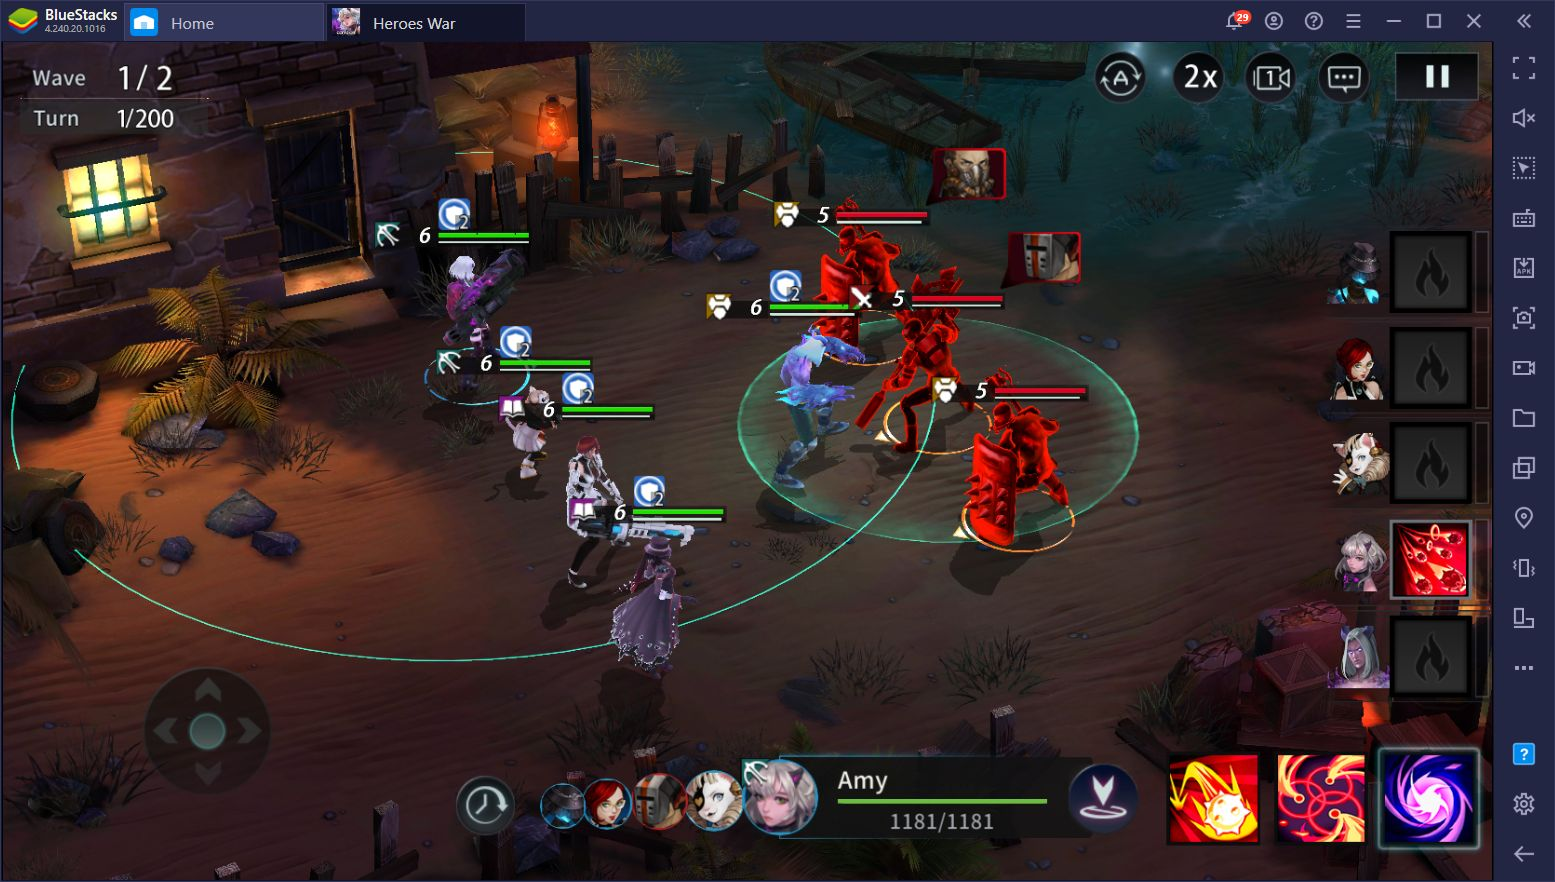 Heroes War: Counterattack – How to Reroll and Other Useful Tips and Tricks